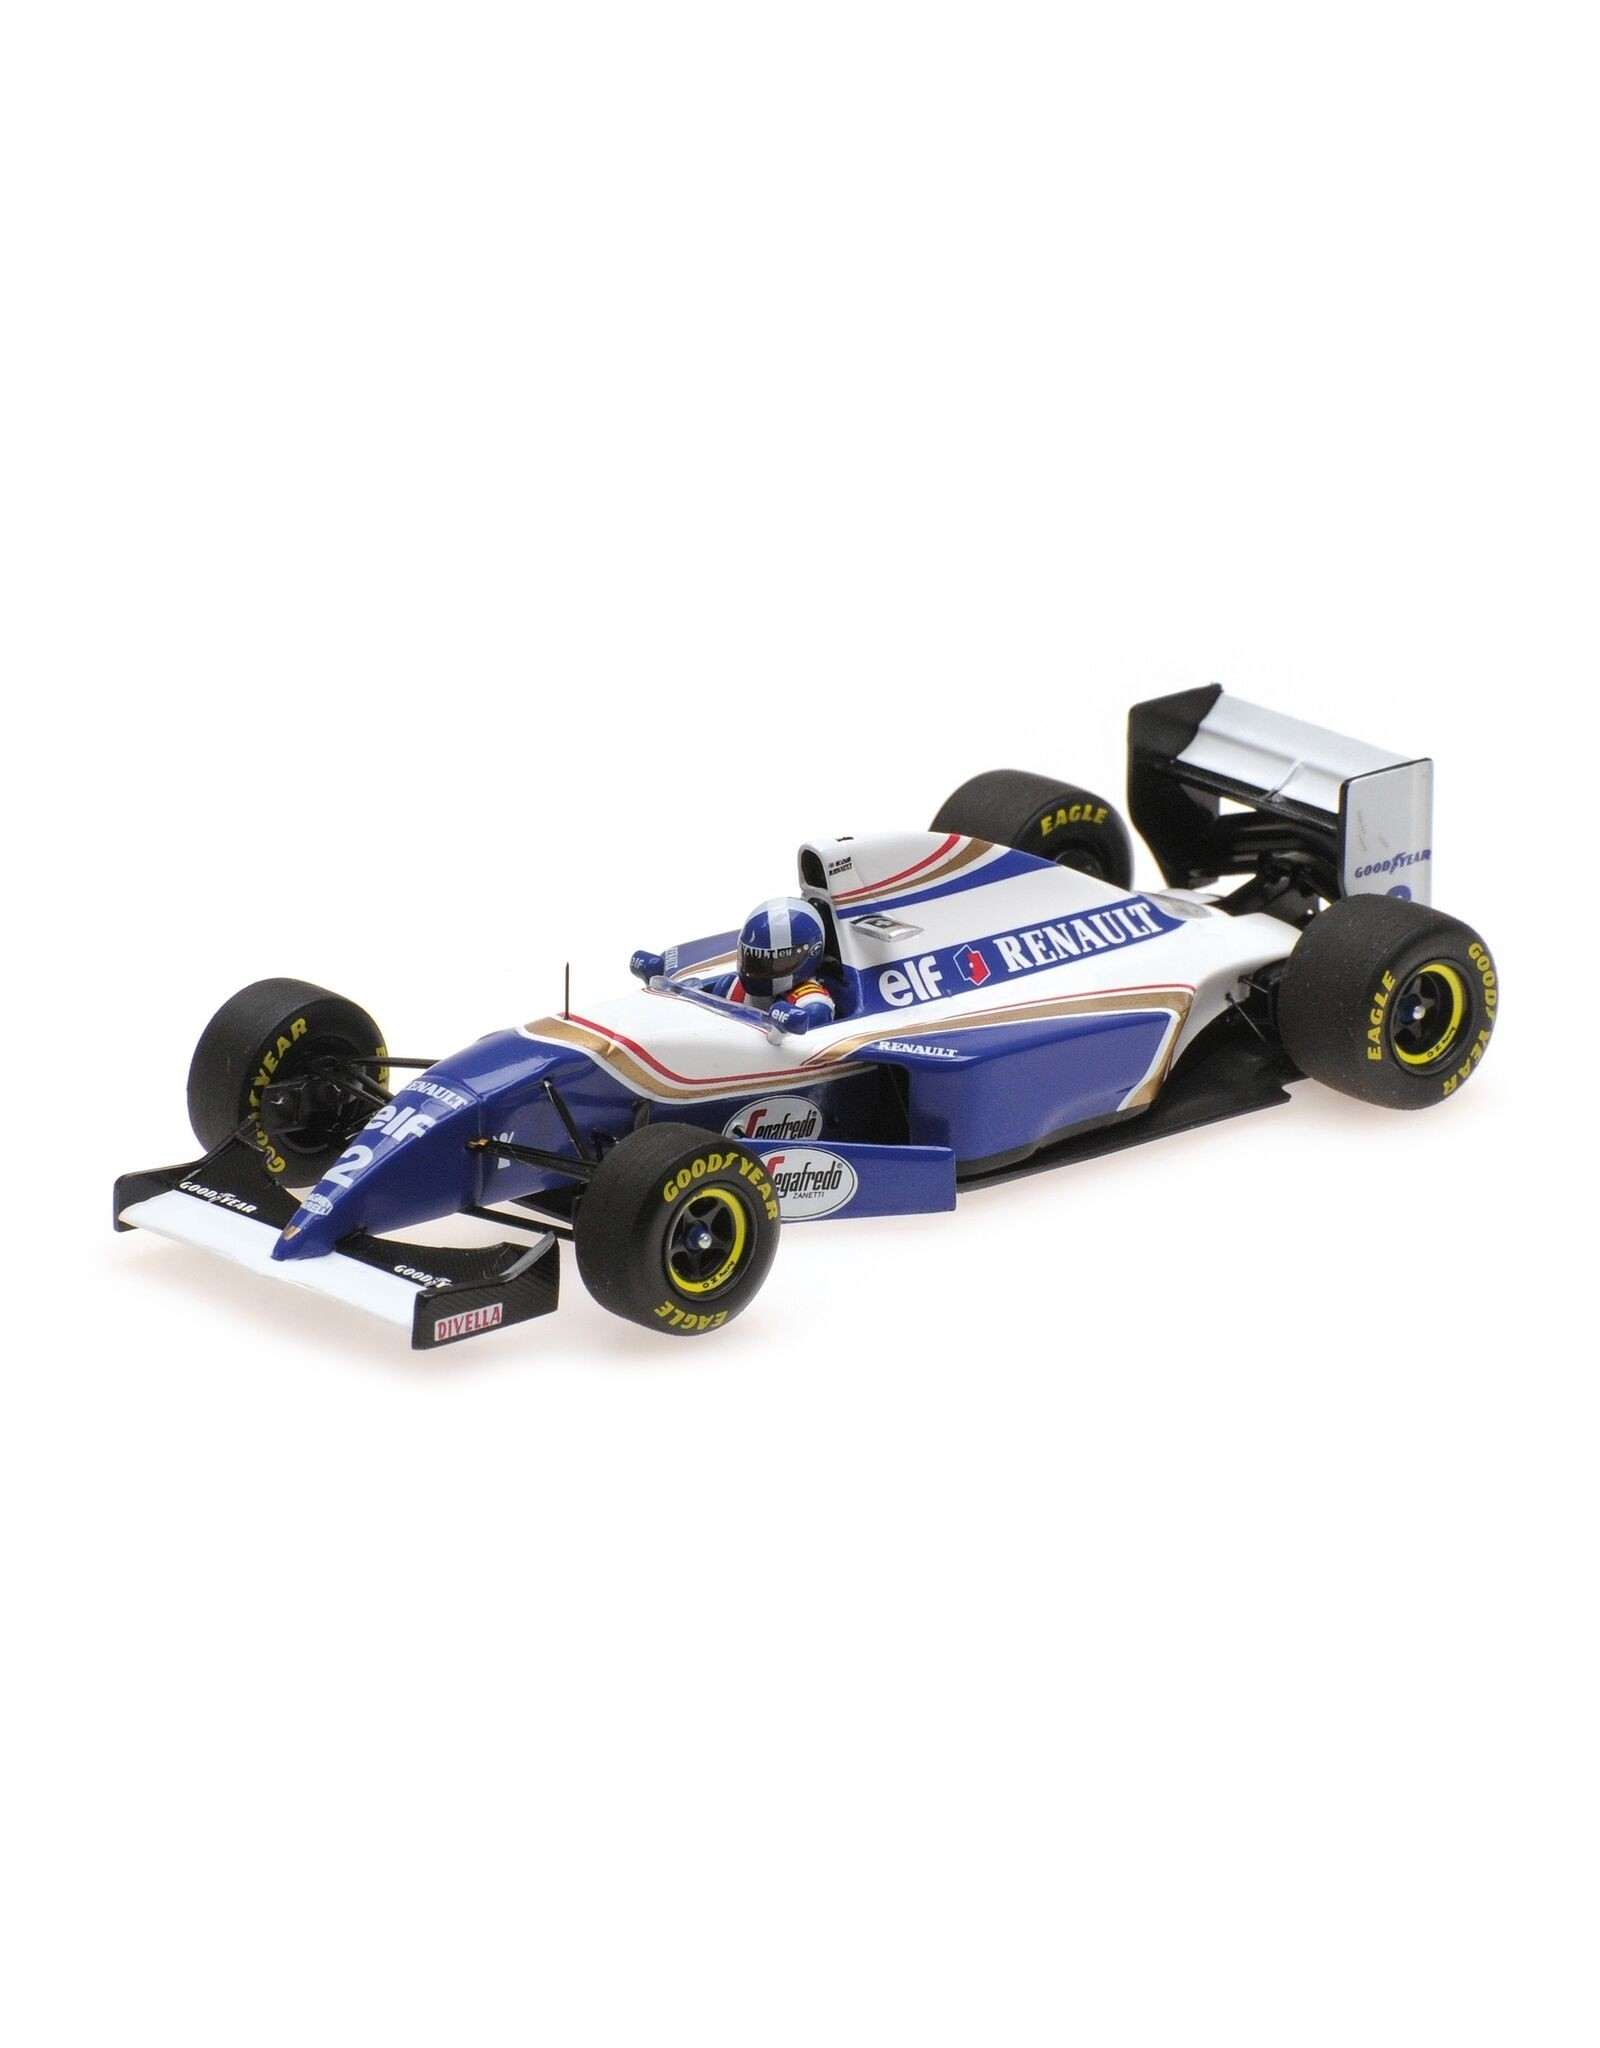 Formule 1 Williams Renault FW16 D. Coulthard GP Debut, Spanish GP 1994 - 1:43 - Minichamps